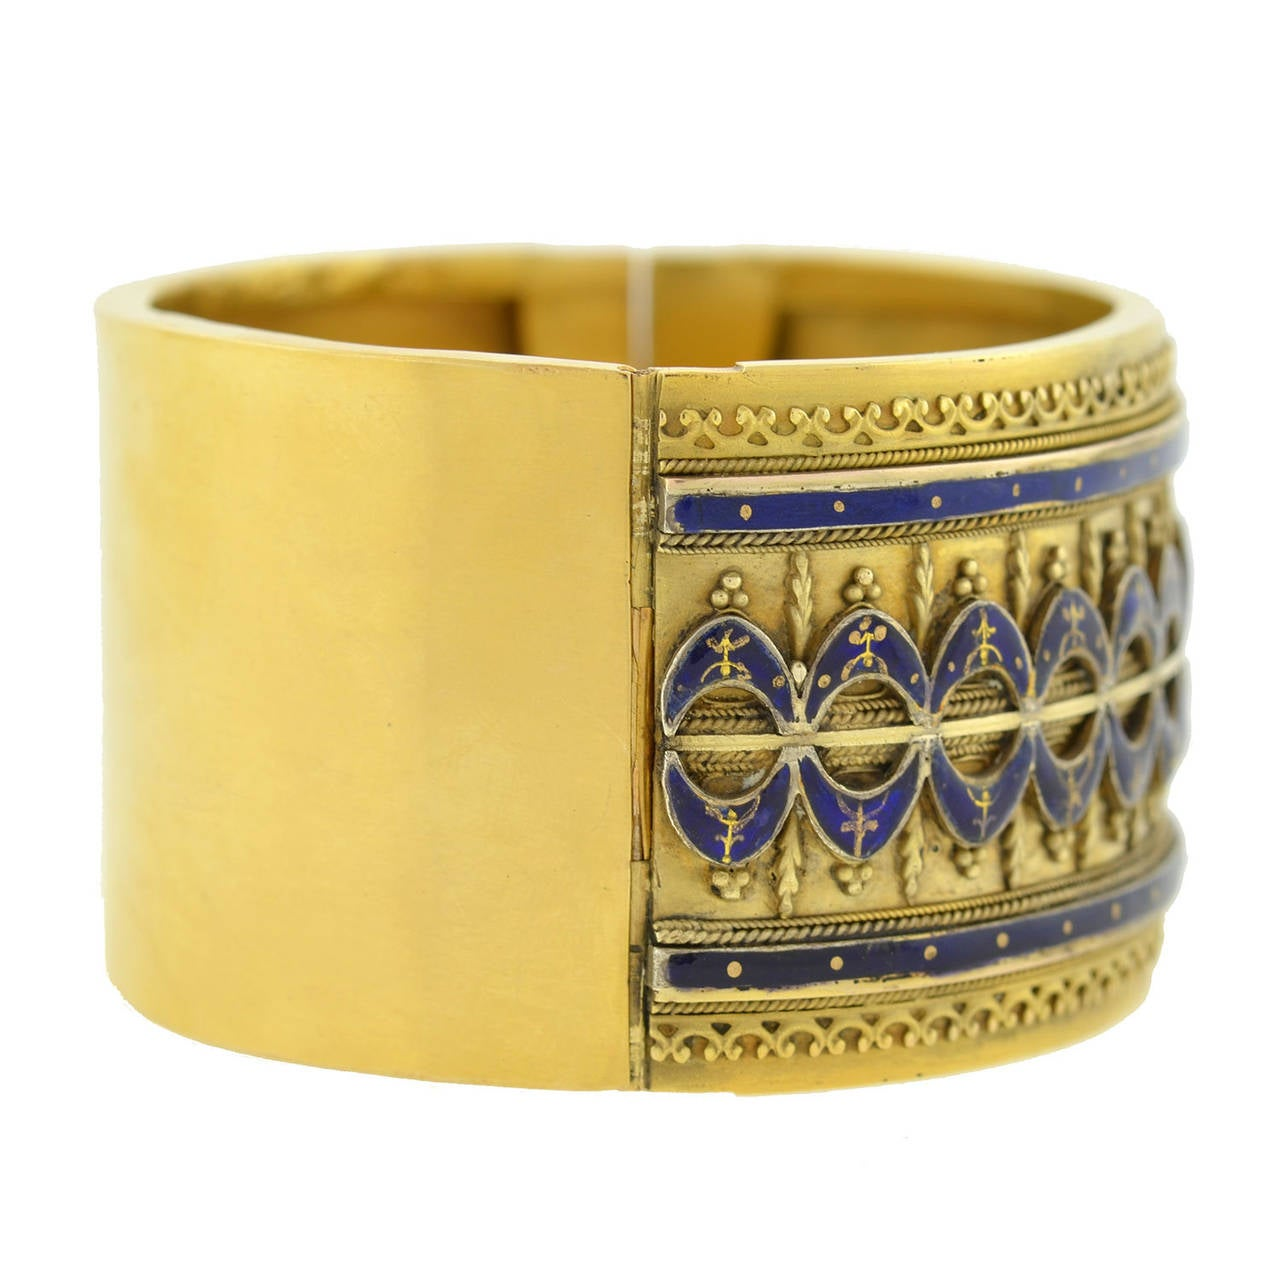 A gorgeous Etruscan bracelet from the Victorian (ca1880) era! This wide bangle is made of vibrant 15kt yellow gold (indicating English origin) and has a fantastic 3-dimensional design that adorns the front surface. The face of the bracelet is